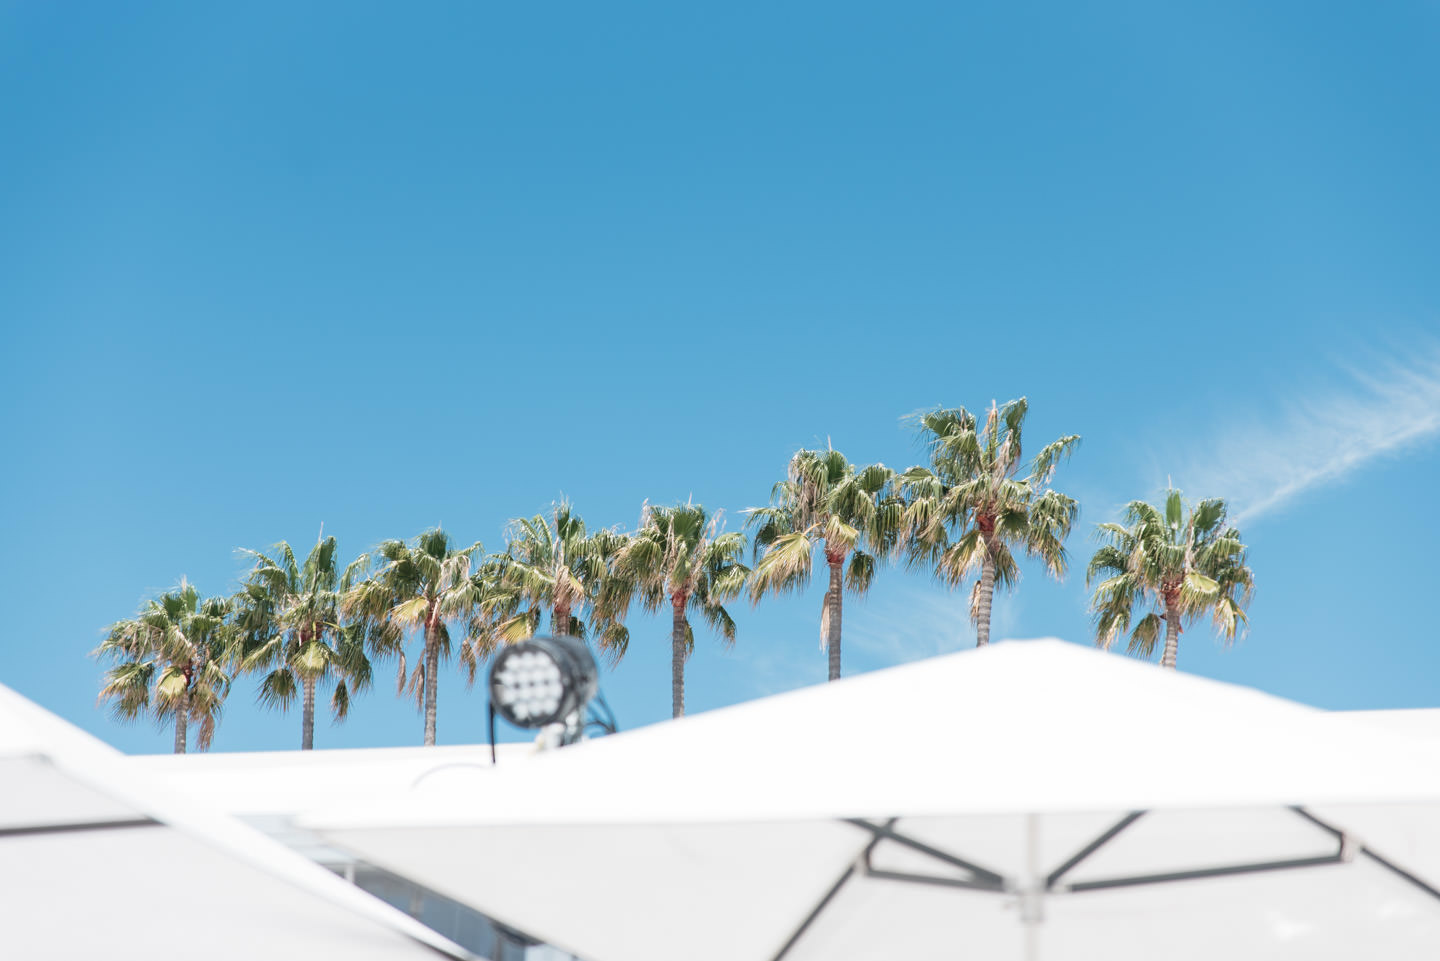 Blog-Mode-And-The-City-Lifestyle-cannes-Mastercard-30 5